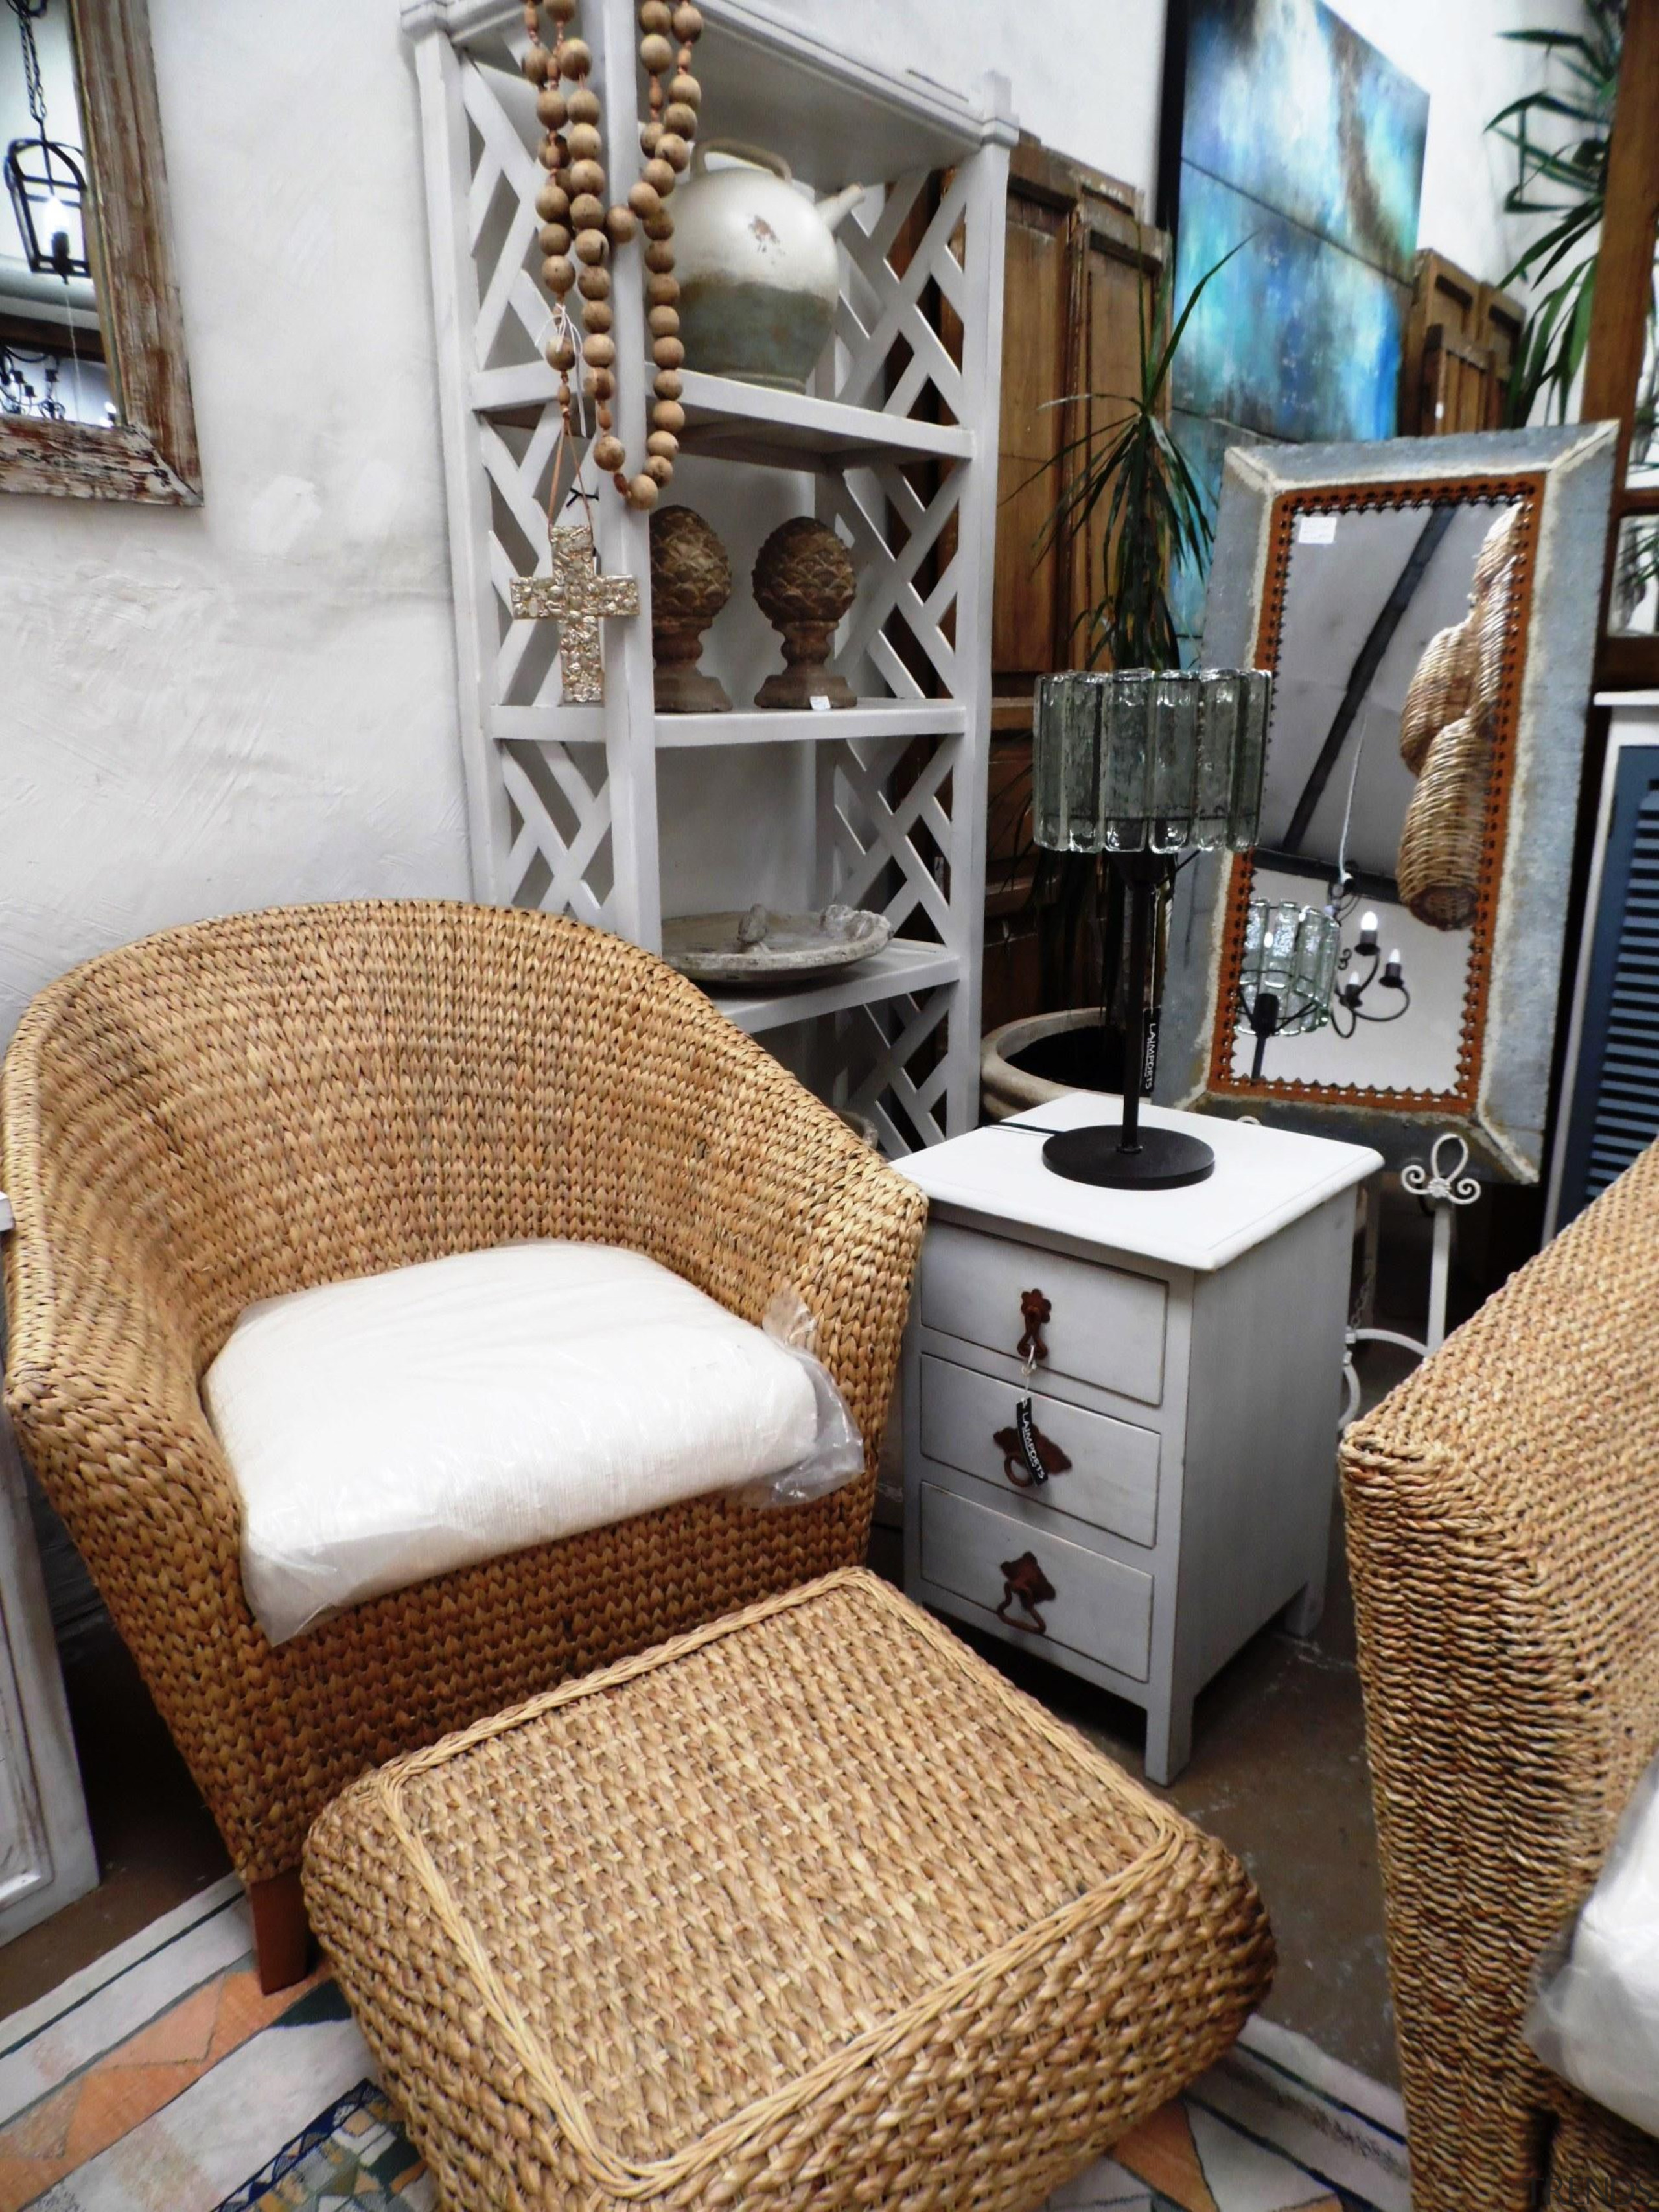 Water hyacinth furniture will always create the feeling chair, furniture, home, interior design, living room, room, table, wicker, brown